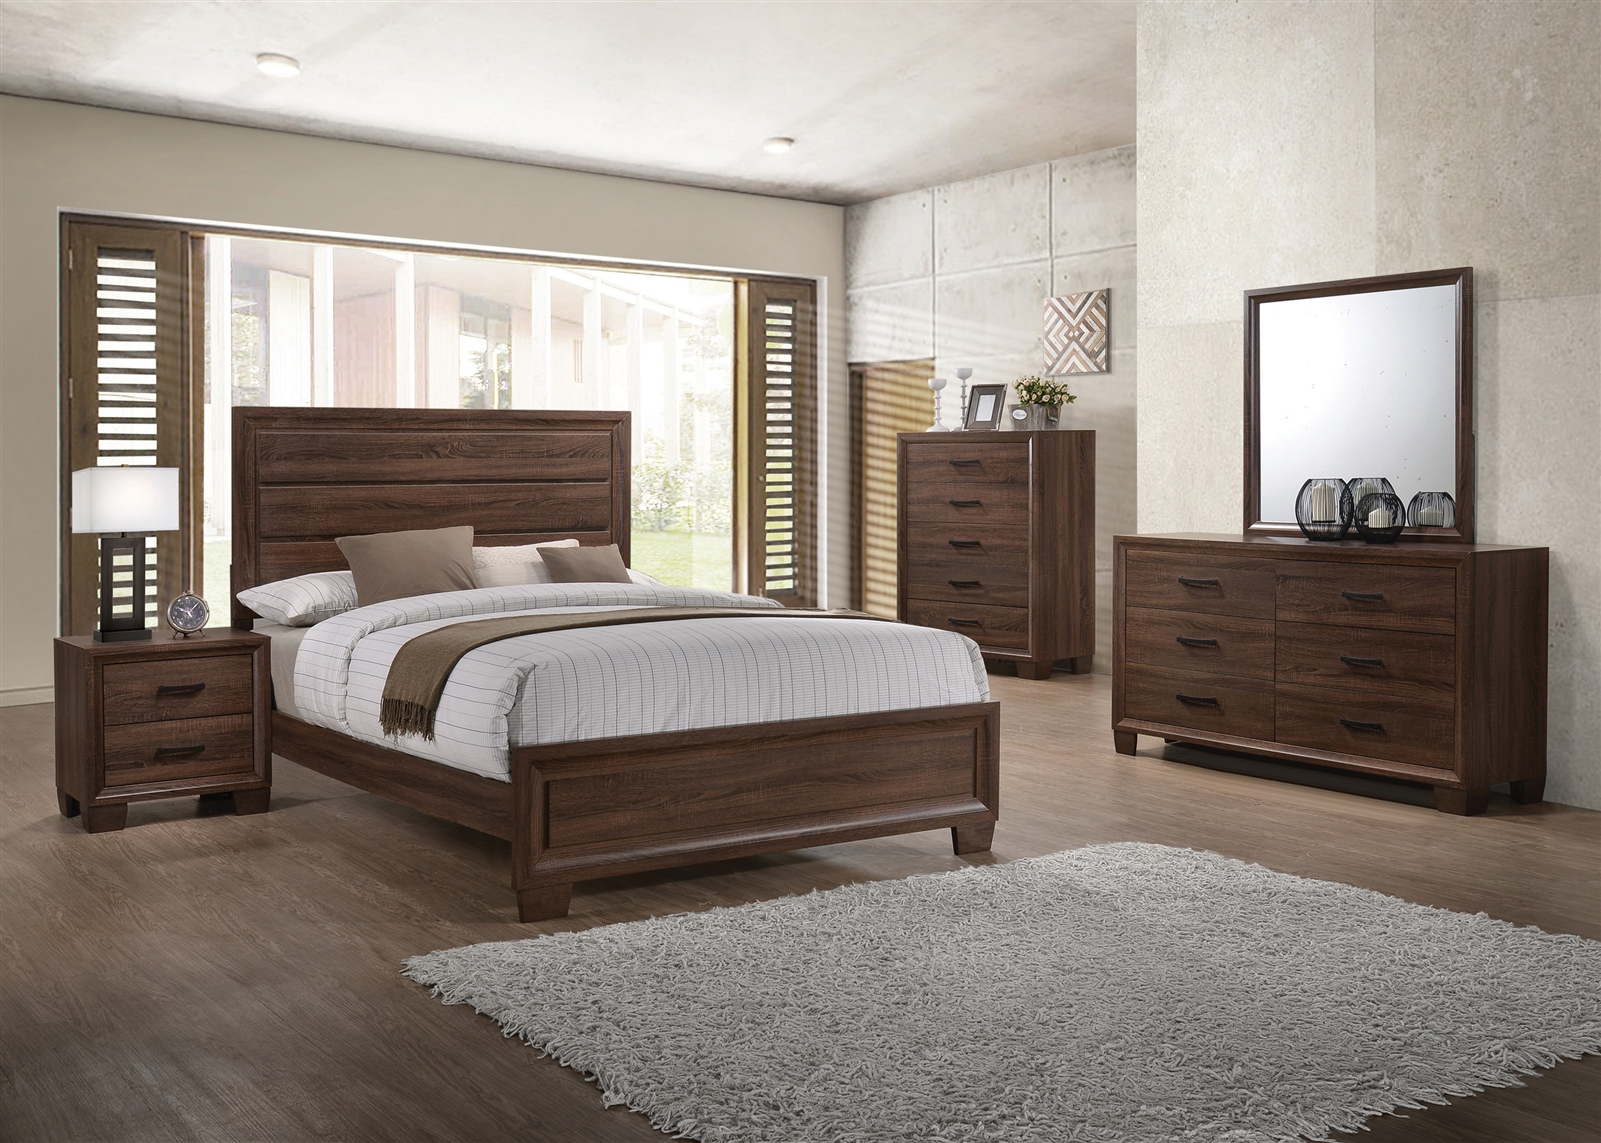 Transitional Style Panel Bed